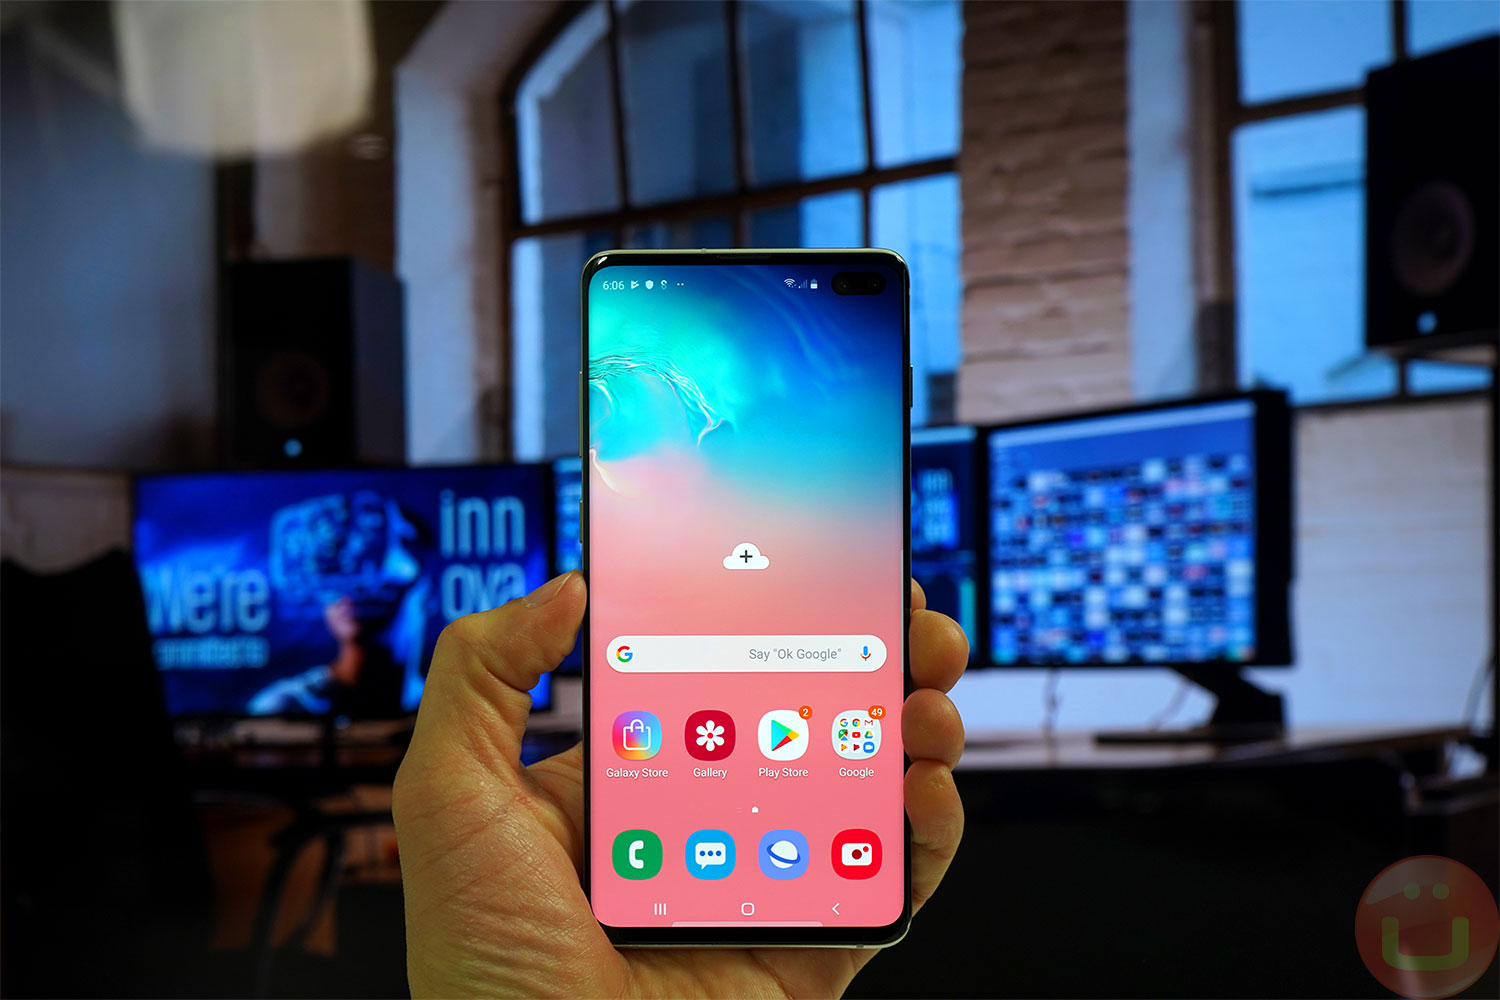 samsung galaxy s10 review 09 front hand